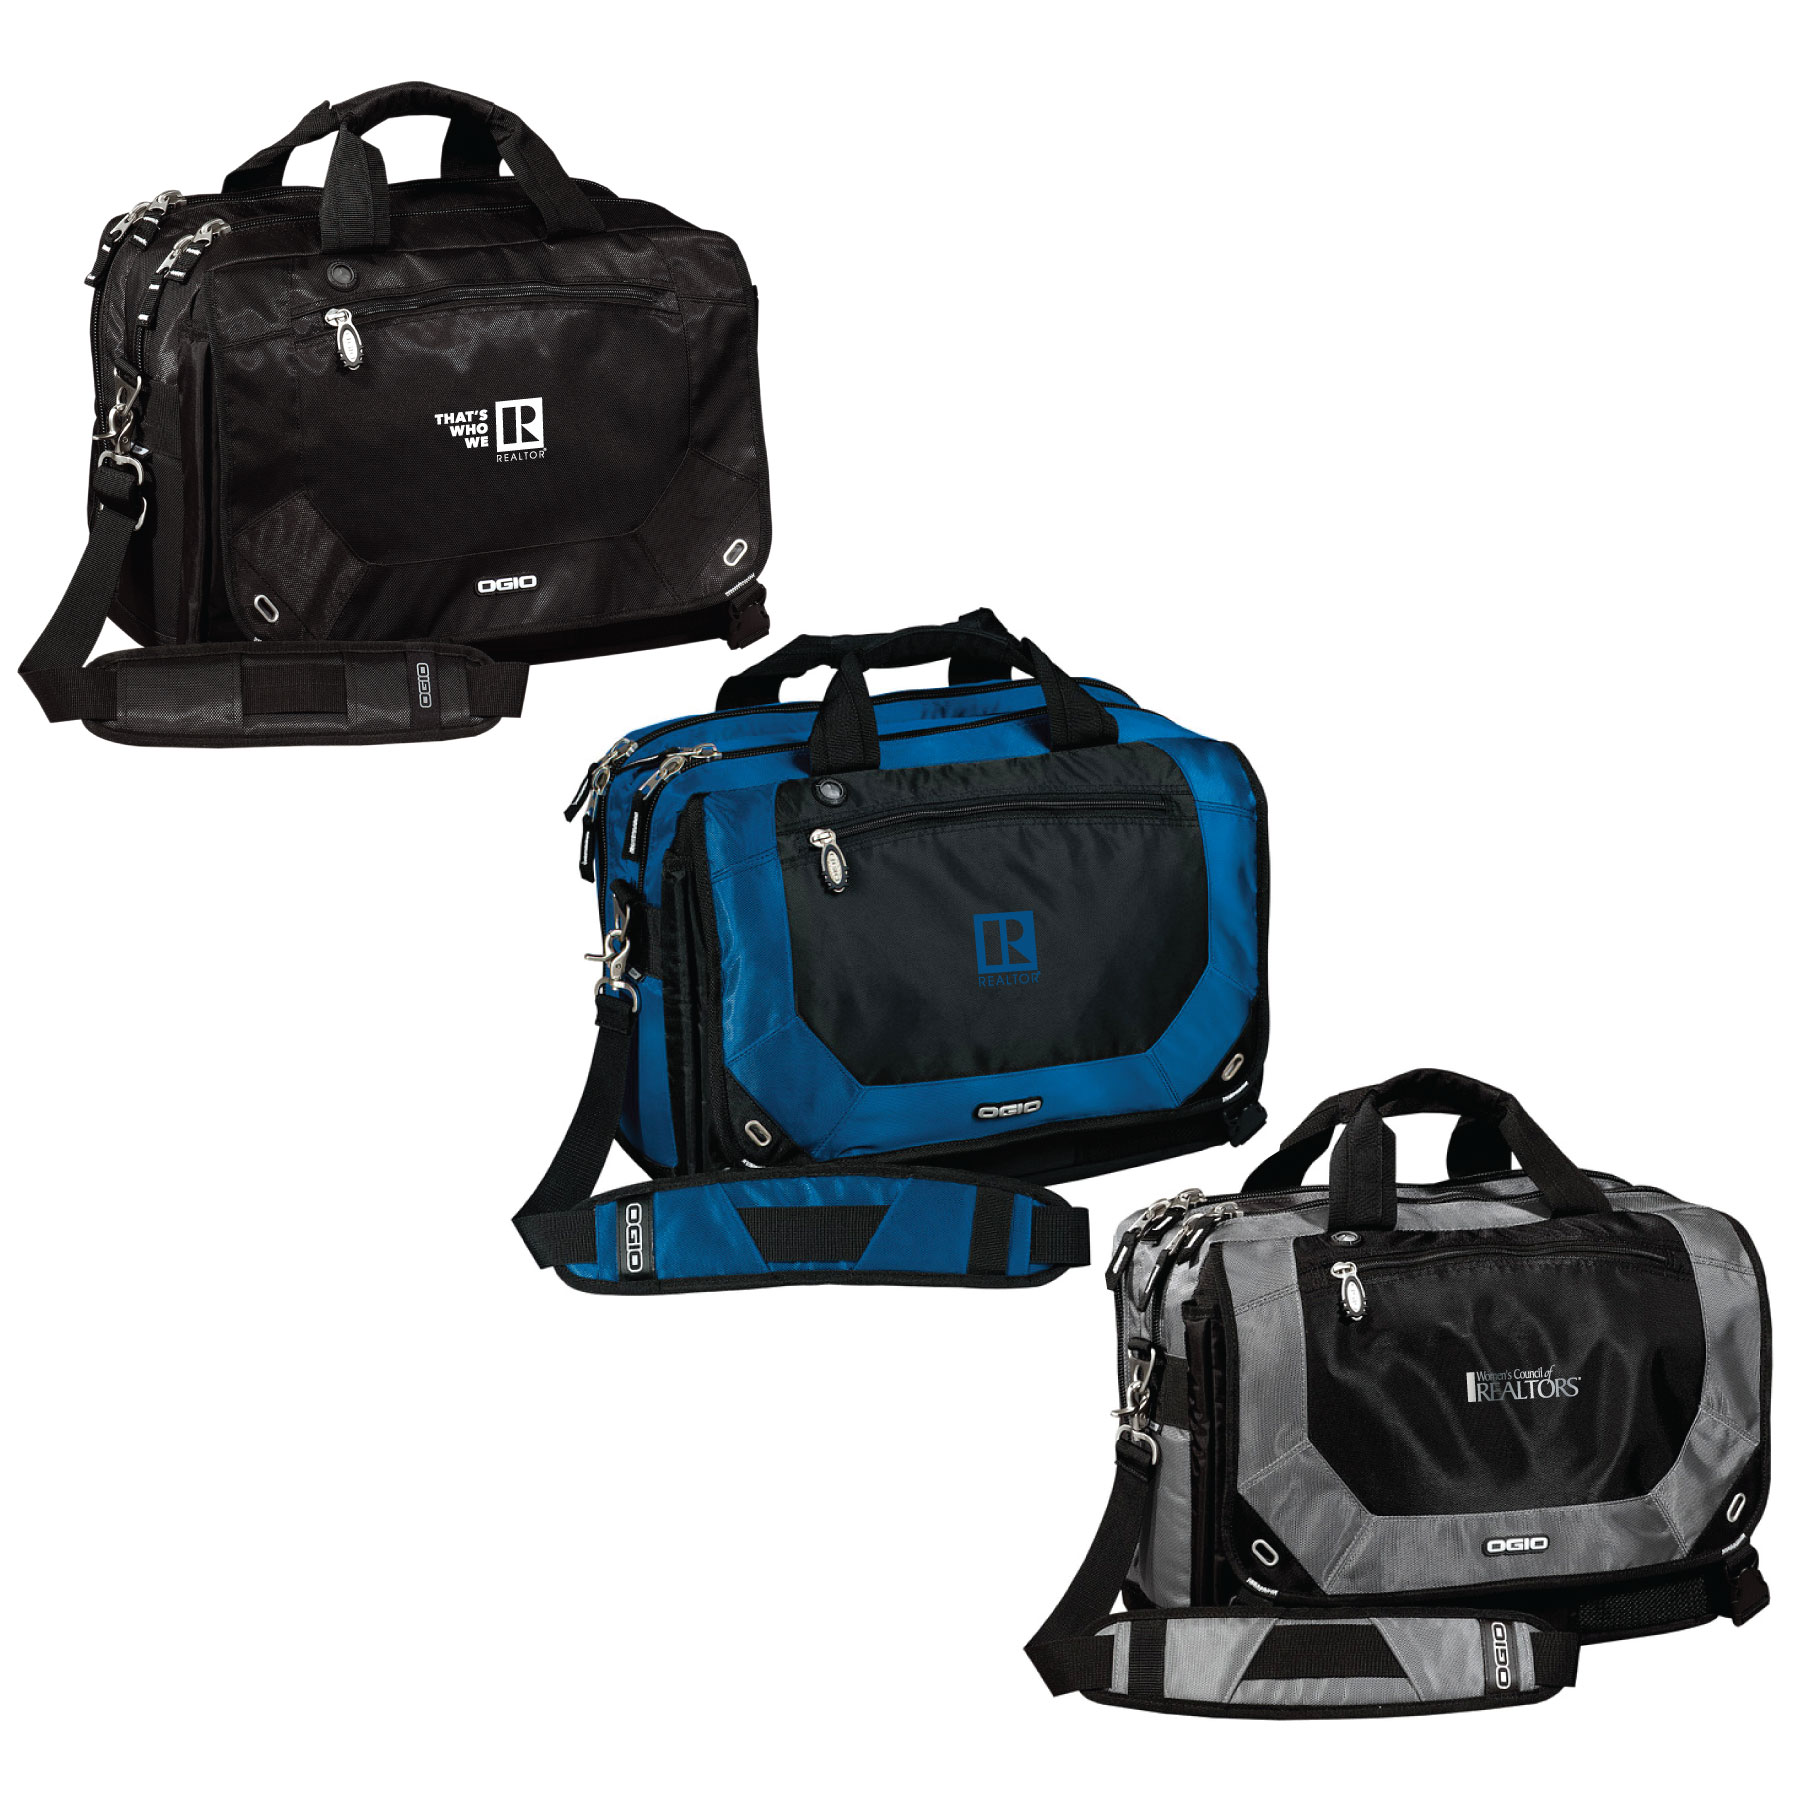 City OGIO® Corporate Messenger Bag Messengers,Commuters,Flaps,Compatments,Attaches,Bags,Shoulders